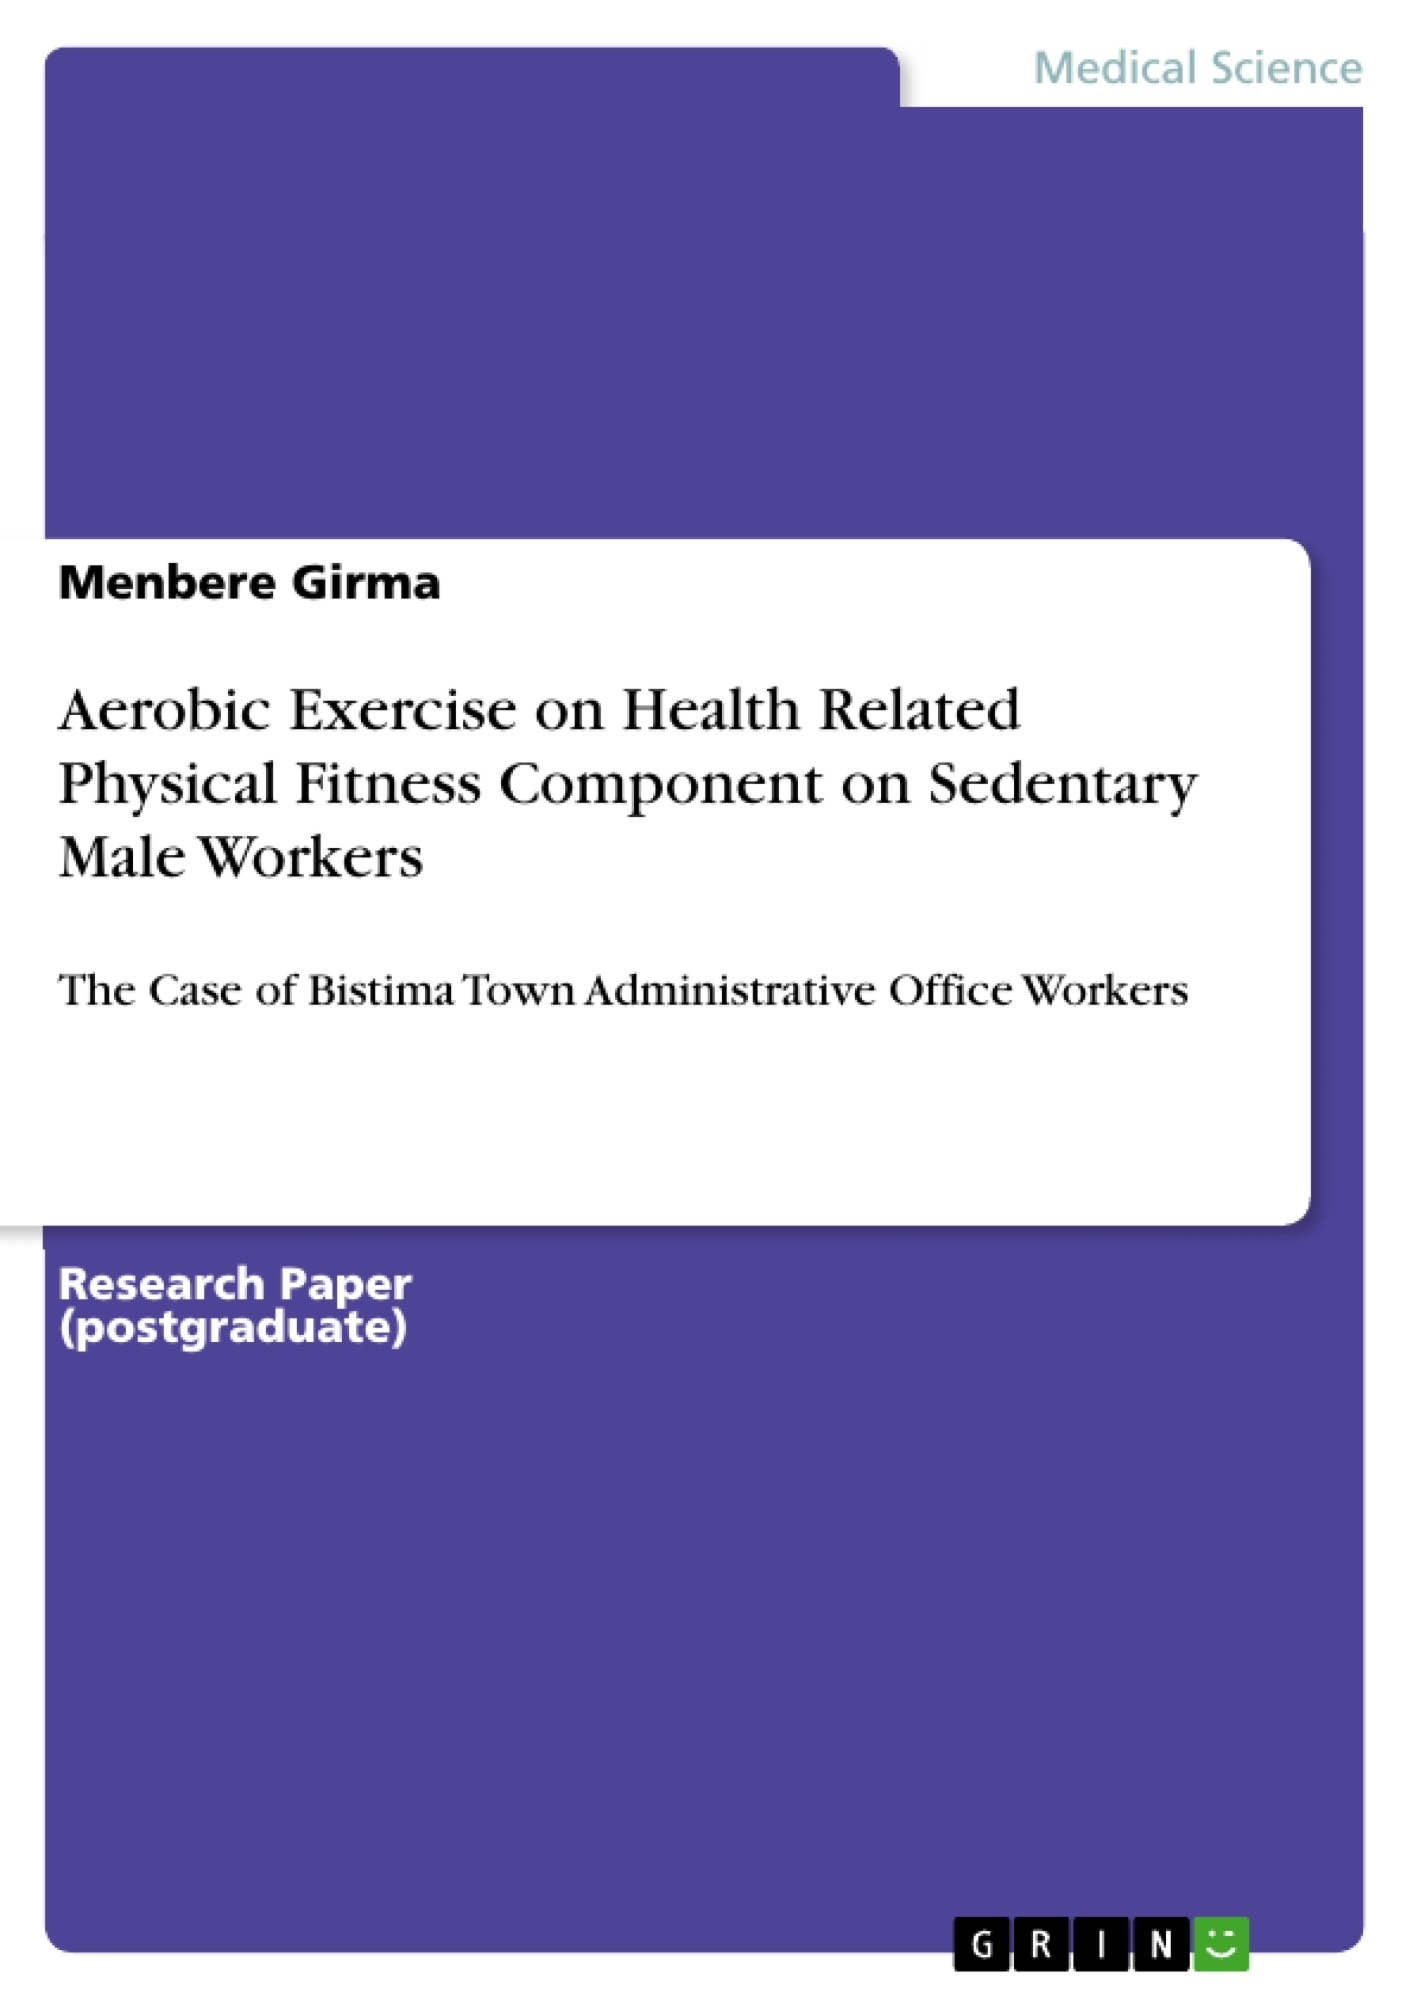 Title: Aerobic Exercise on Health Related Physical Fitness Component on Sedentary Male Workers